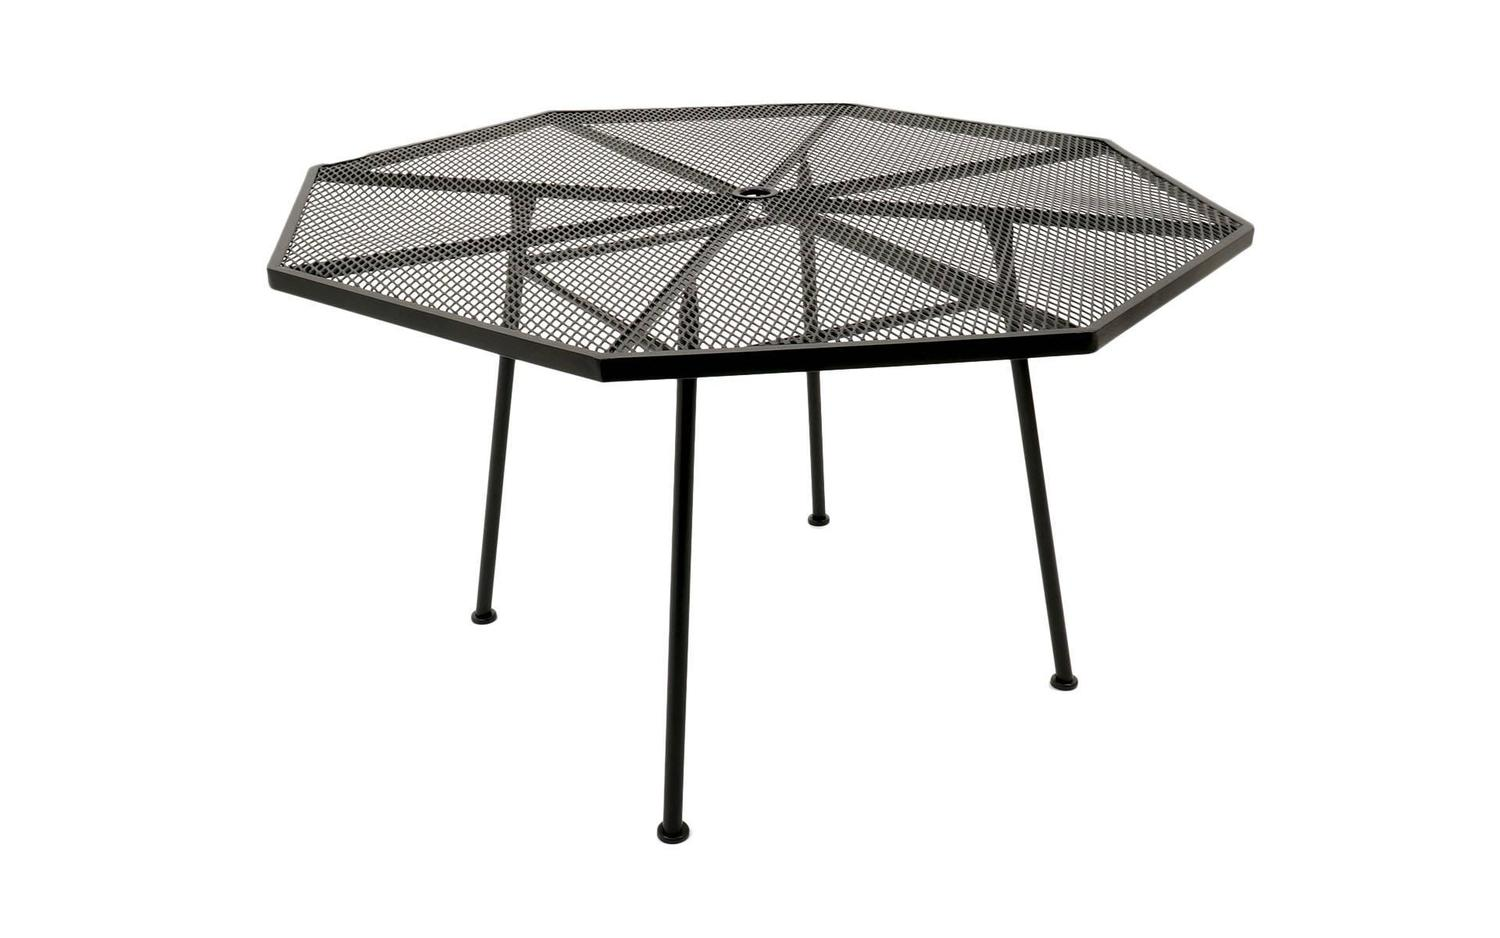 Russell woodard sculptura outdoor patio dining sets for Woodard outdoor furniture